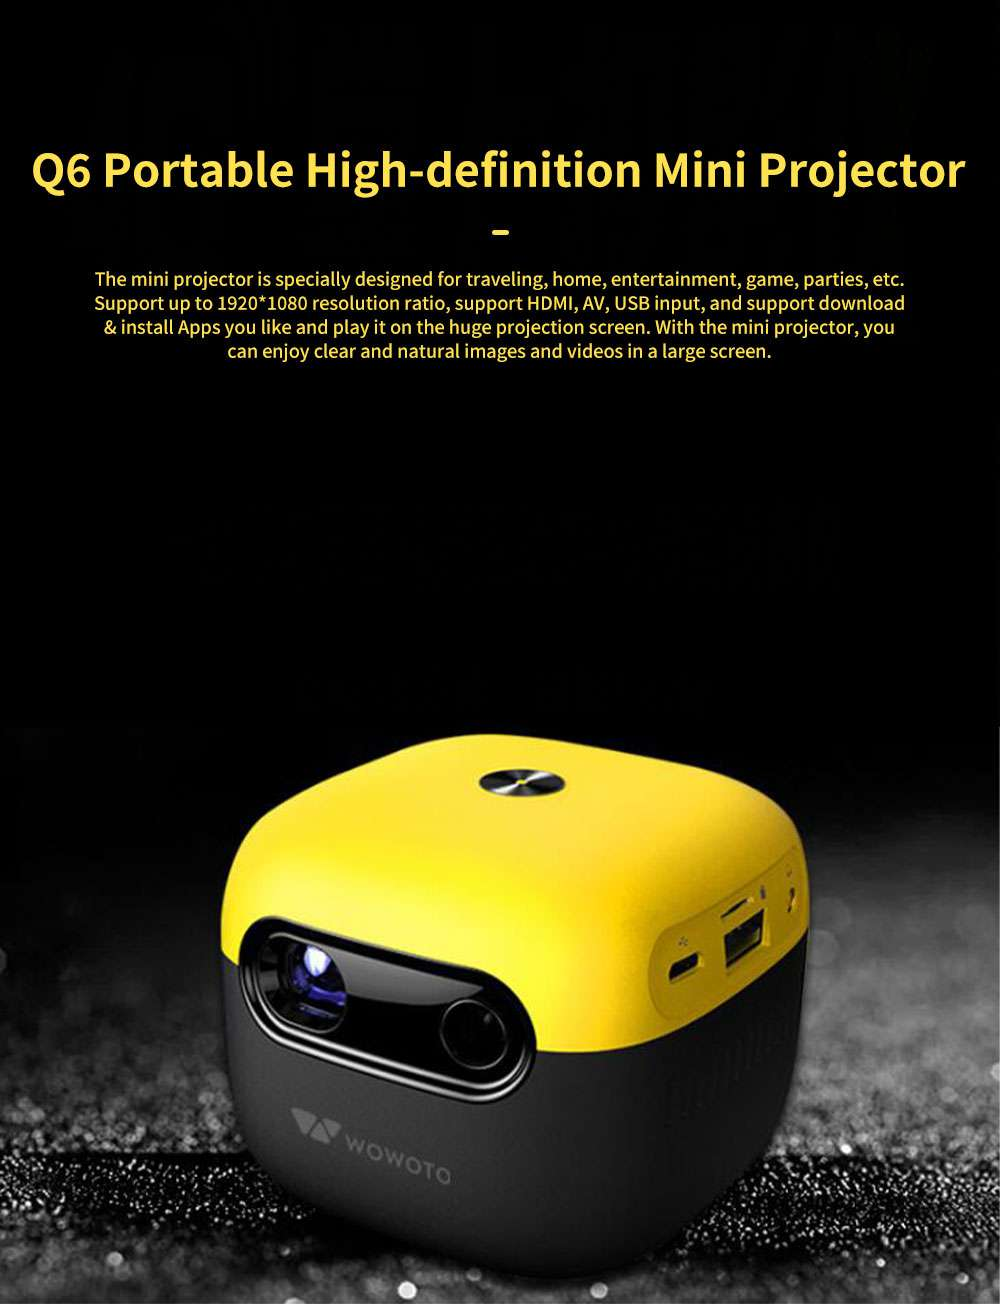 Q6 Mini Projector Portable HD 1080P Small Multimedia Projector for Home Theater Entertainment Games Parties Movie Projectors Support Laptop PC Smart Phone 0